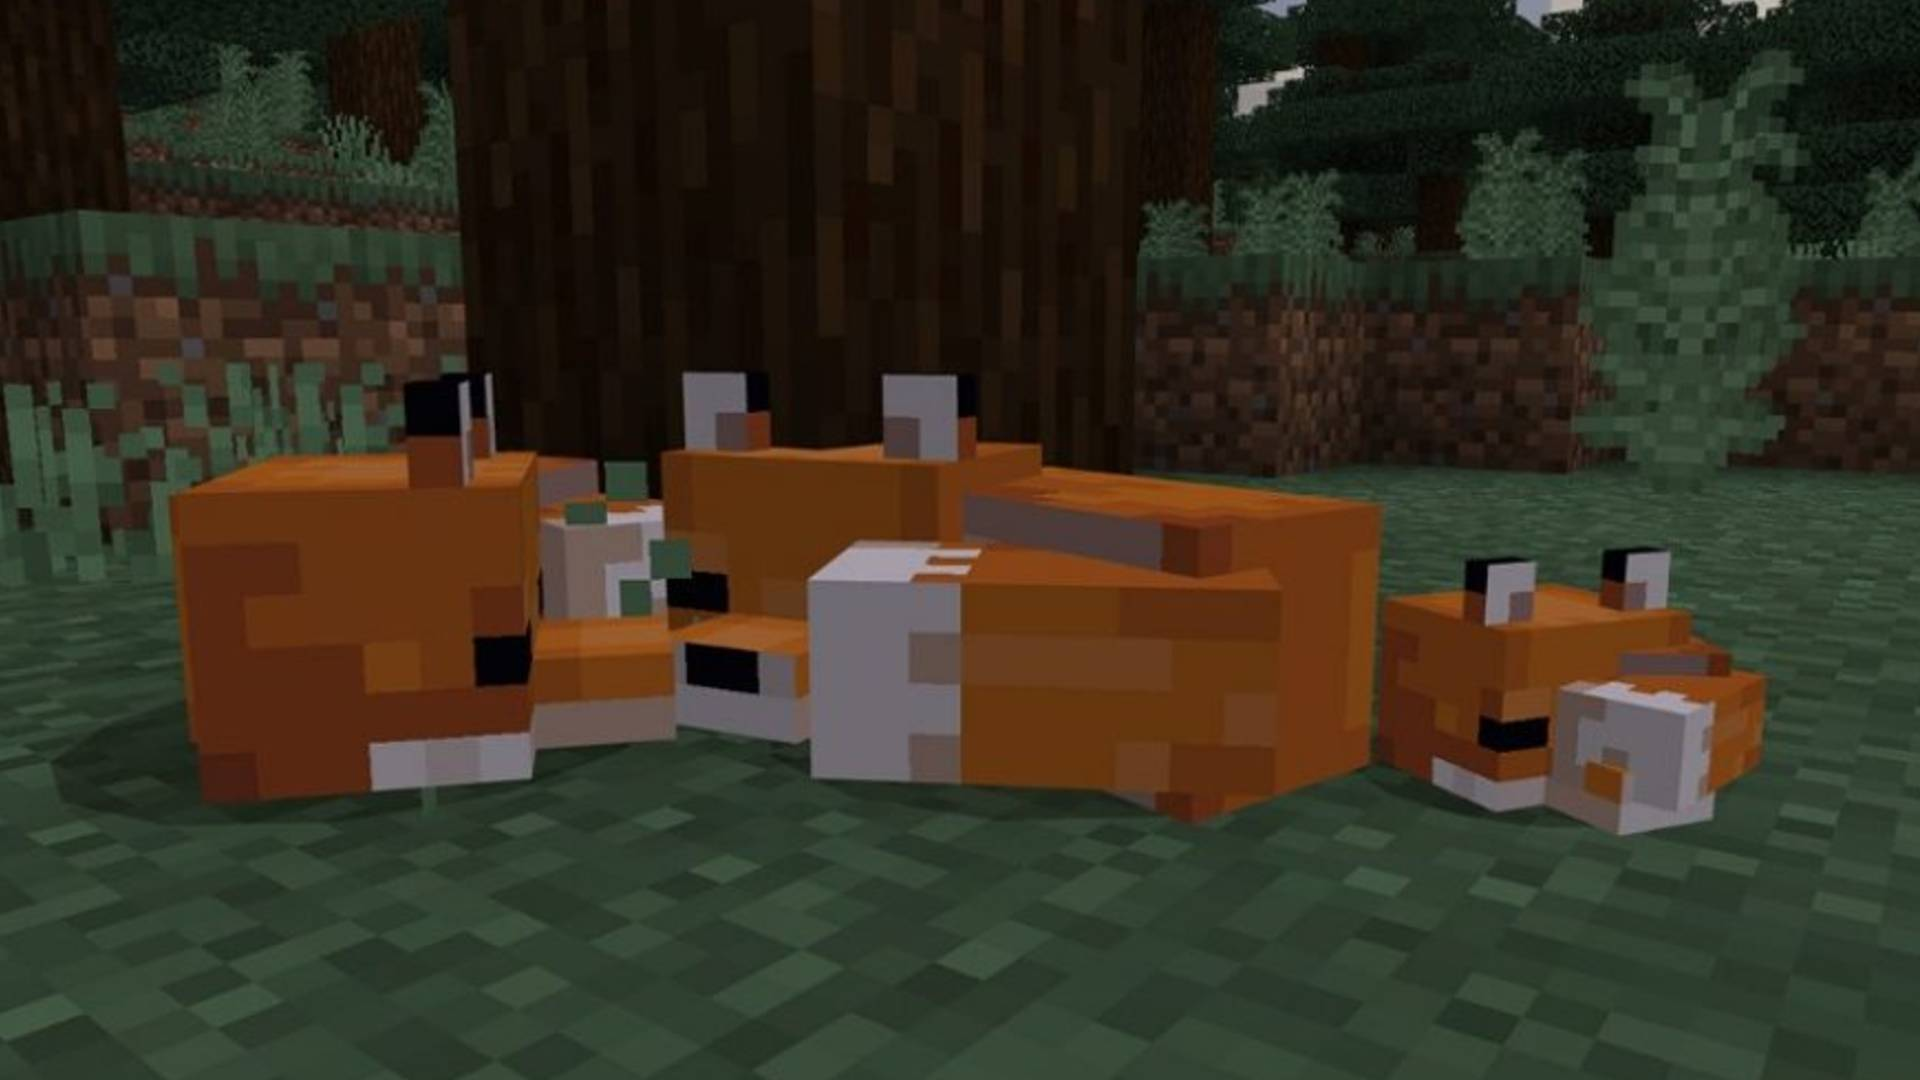 Minecraft fox guide: how to tame a fox in Minecraft